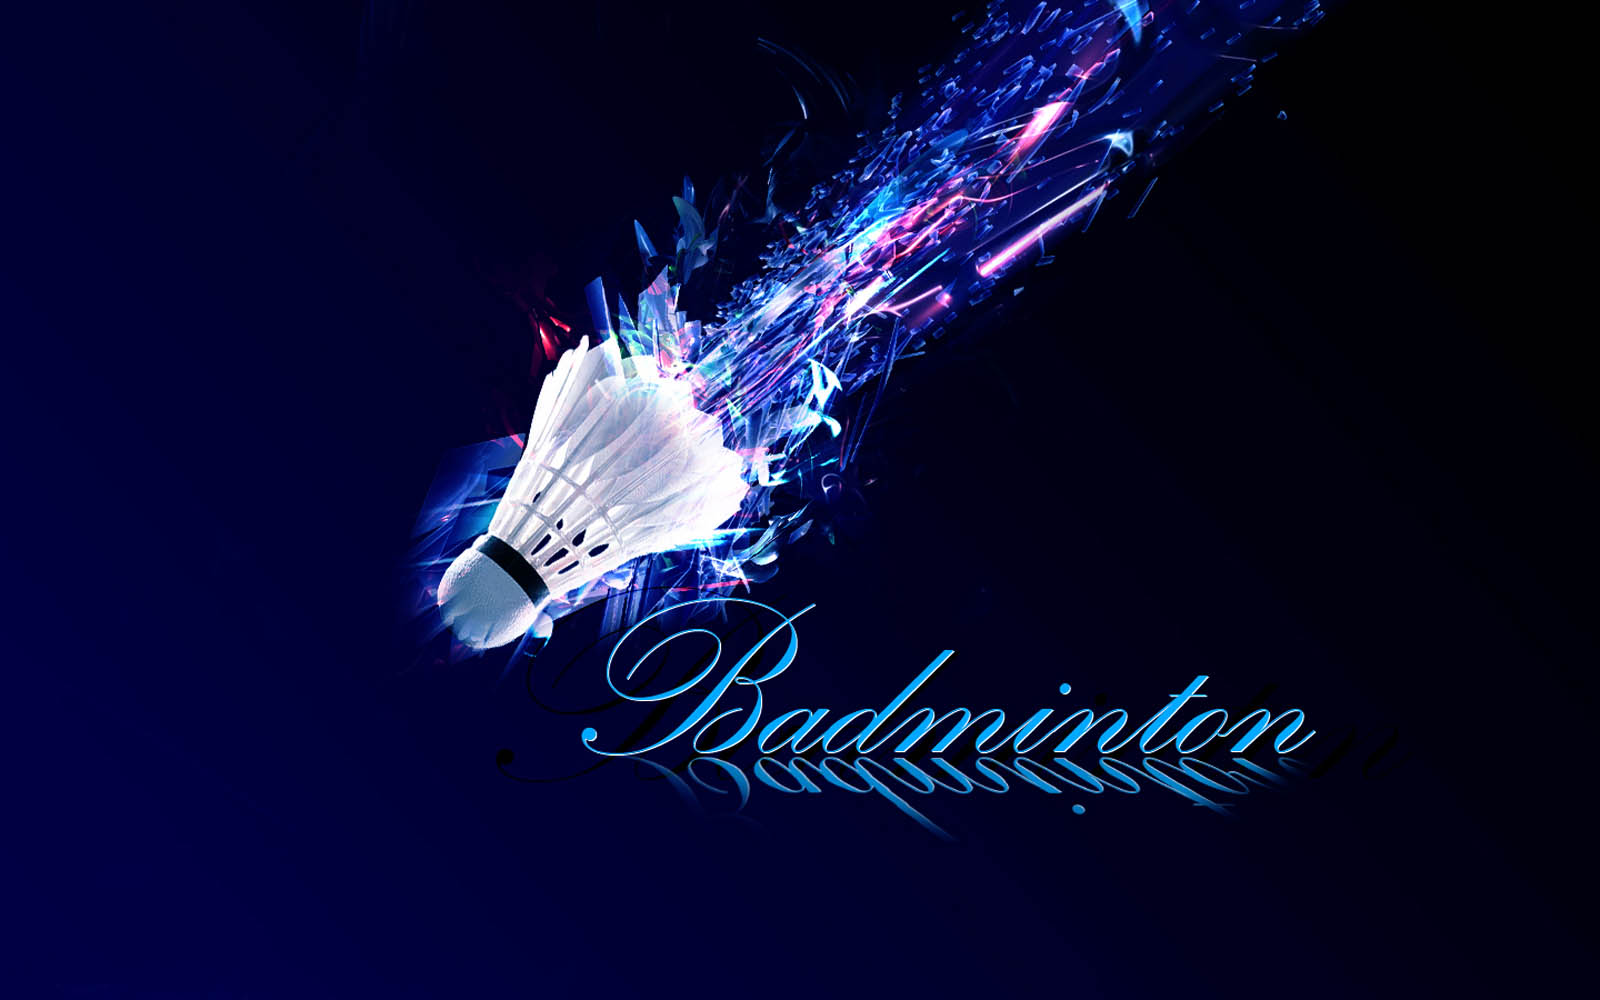 12 badminton hd wallpapers backgrounds wallpaper abyss - Wallpaper abyss categories ...